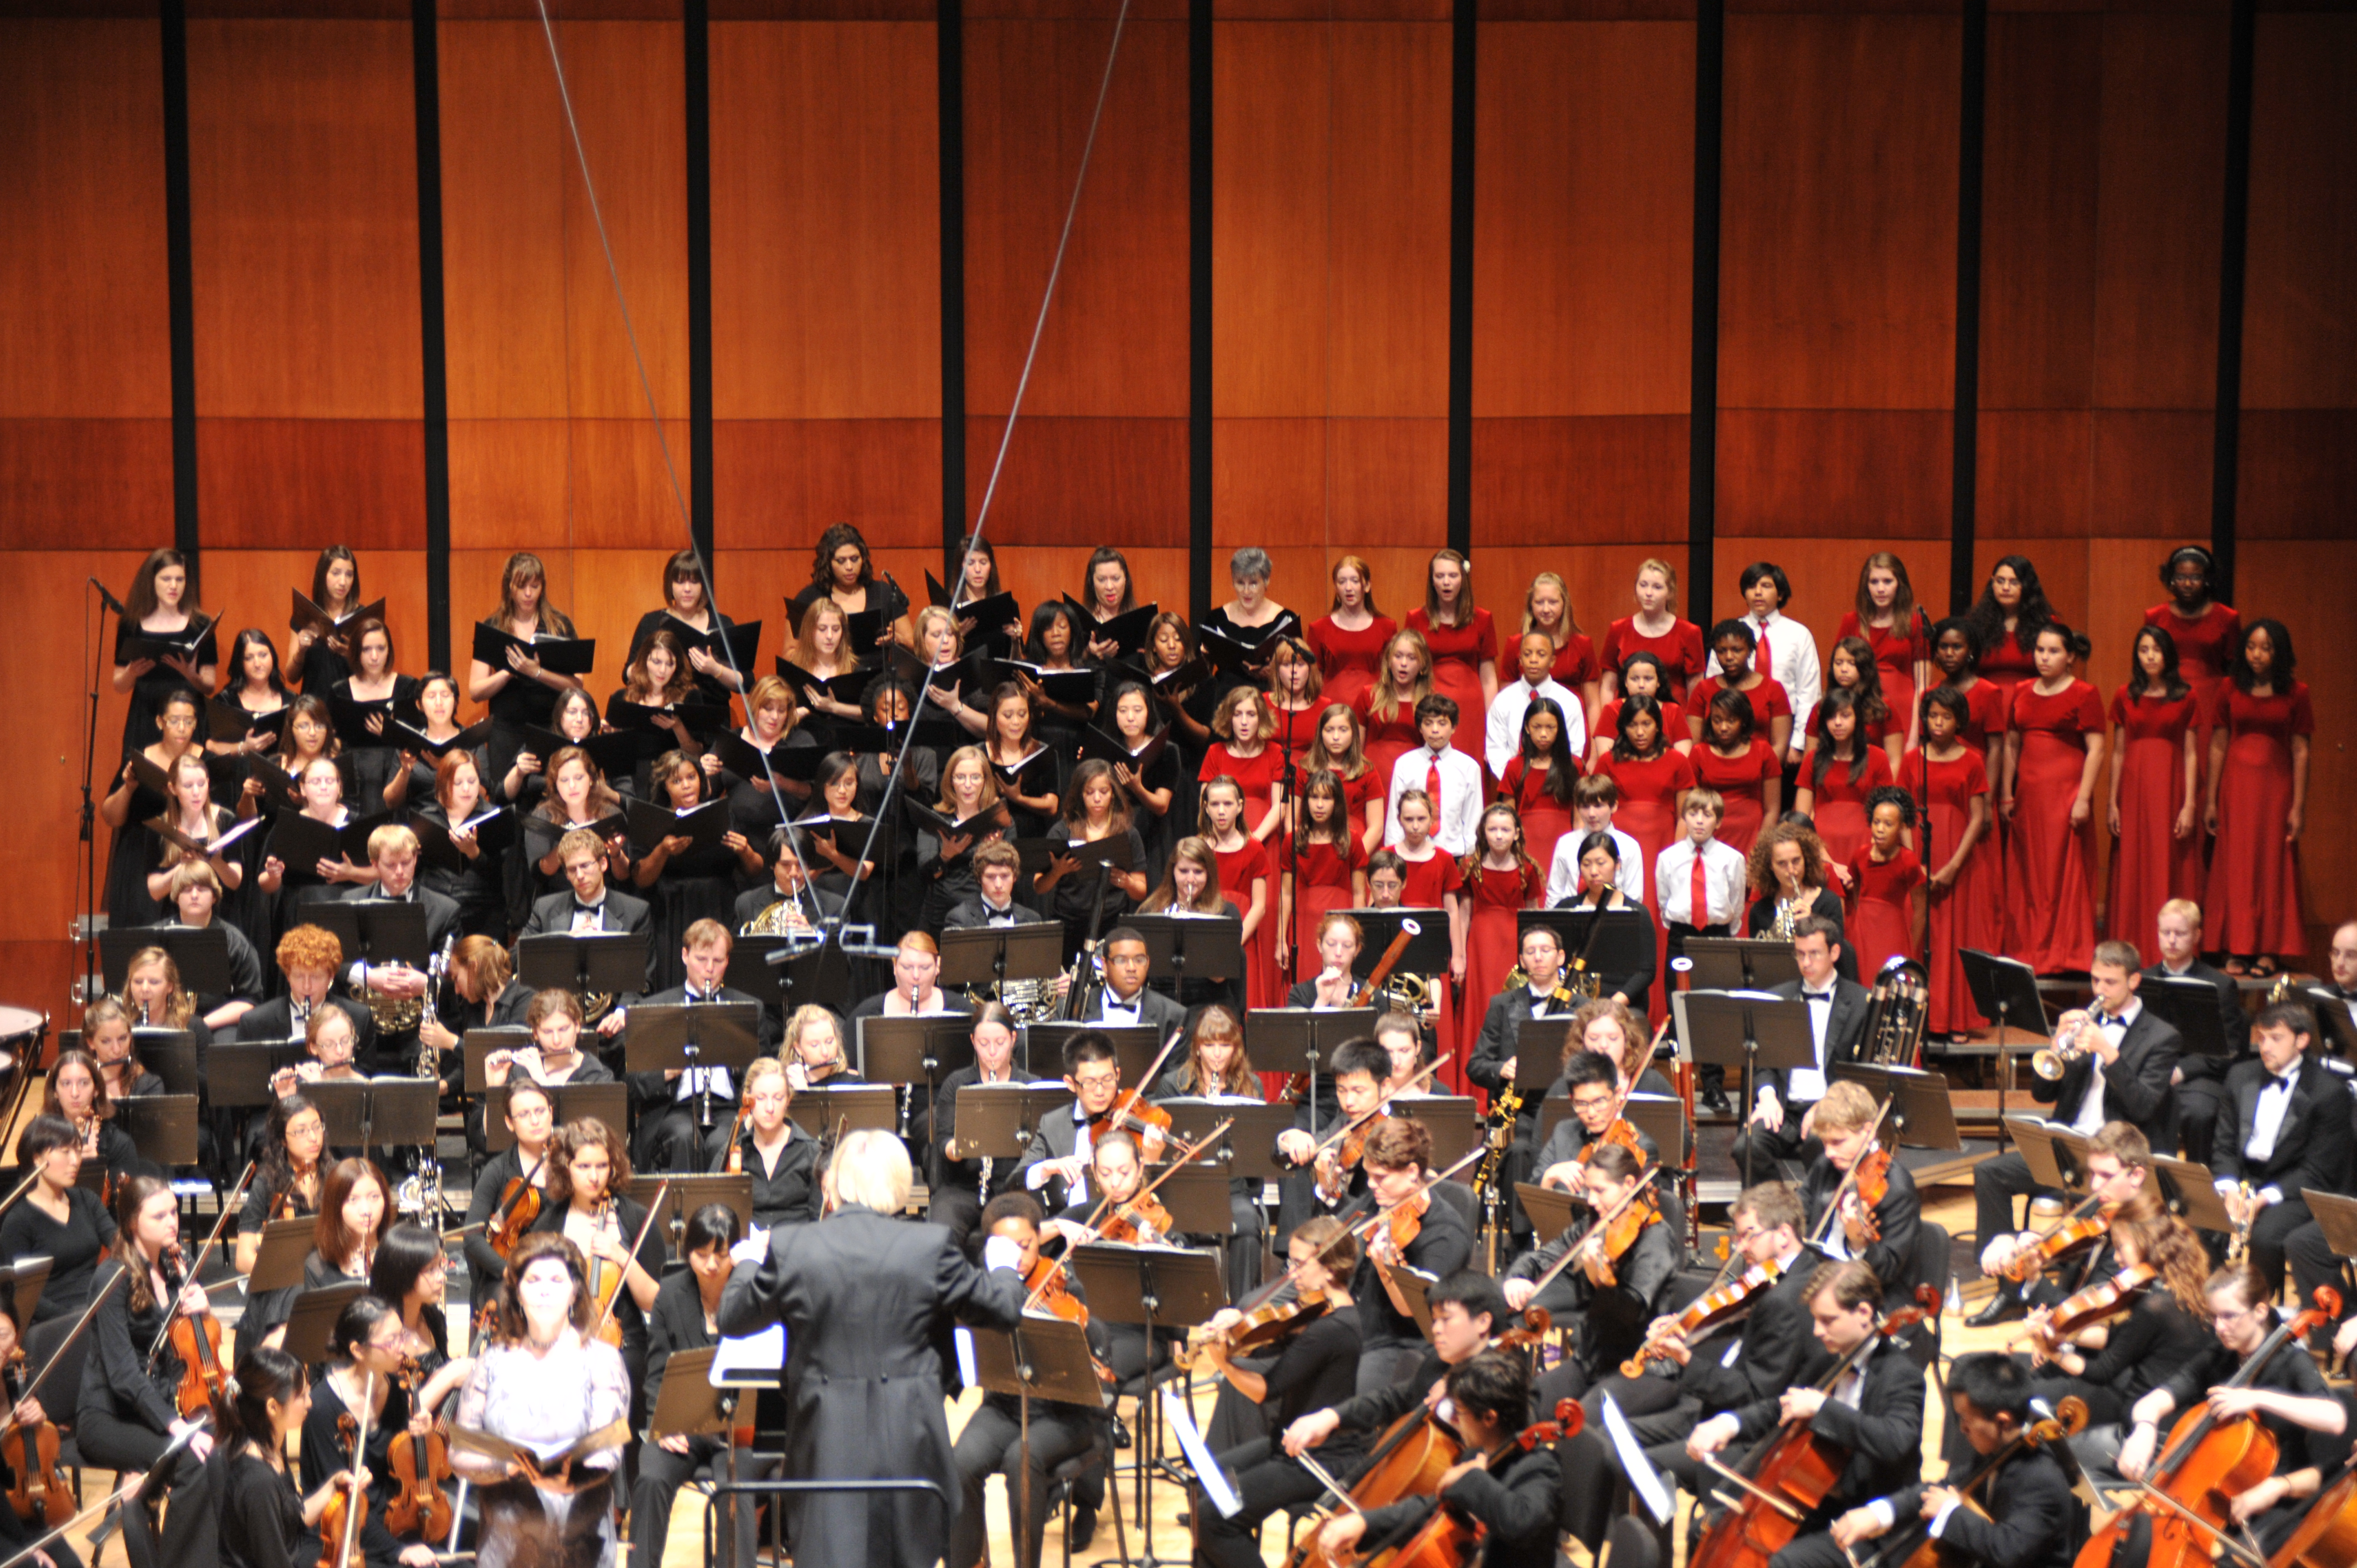 PERFORMING IN MAHLER'S 3RD